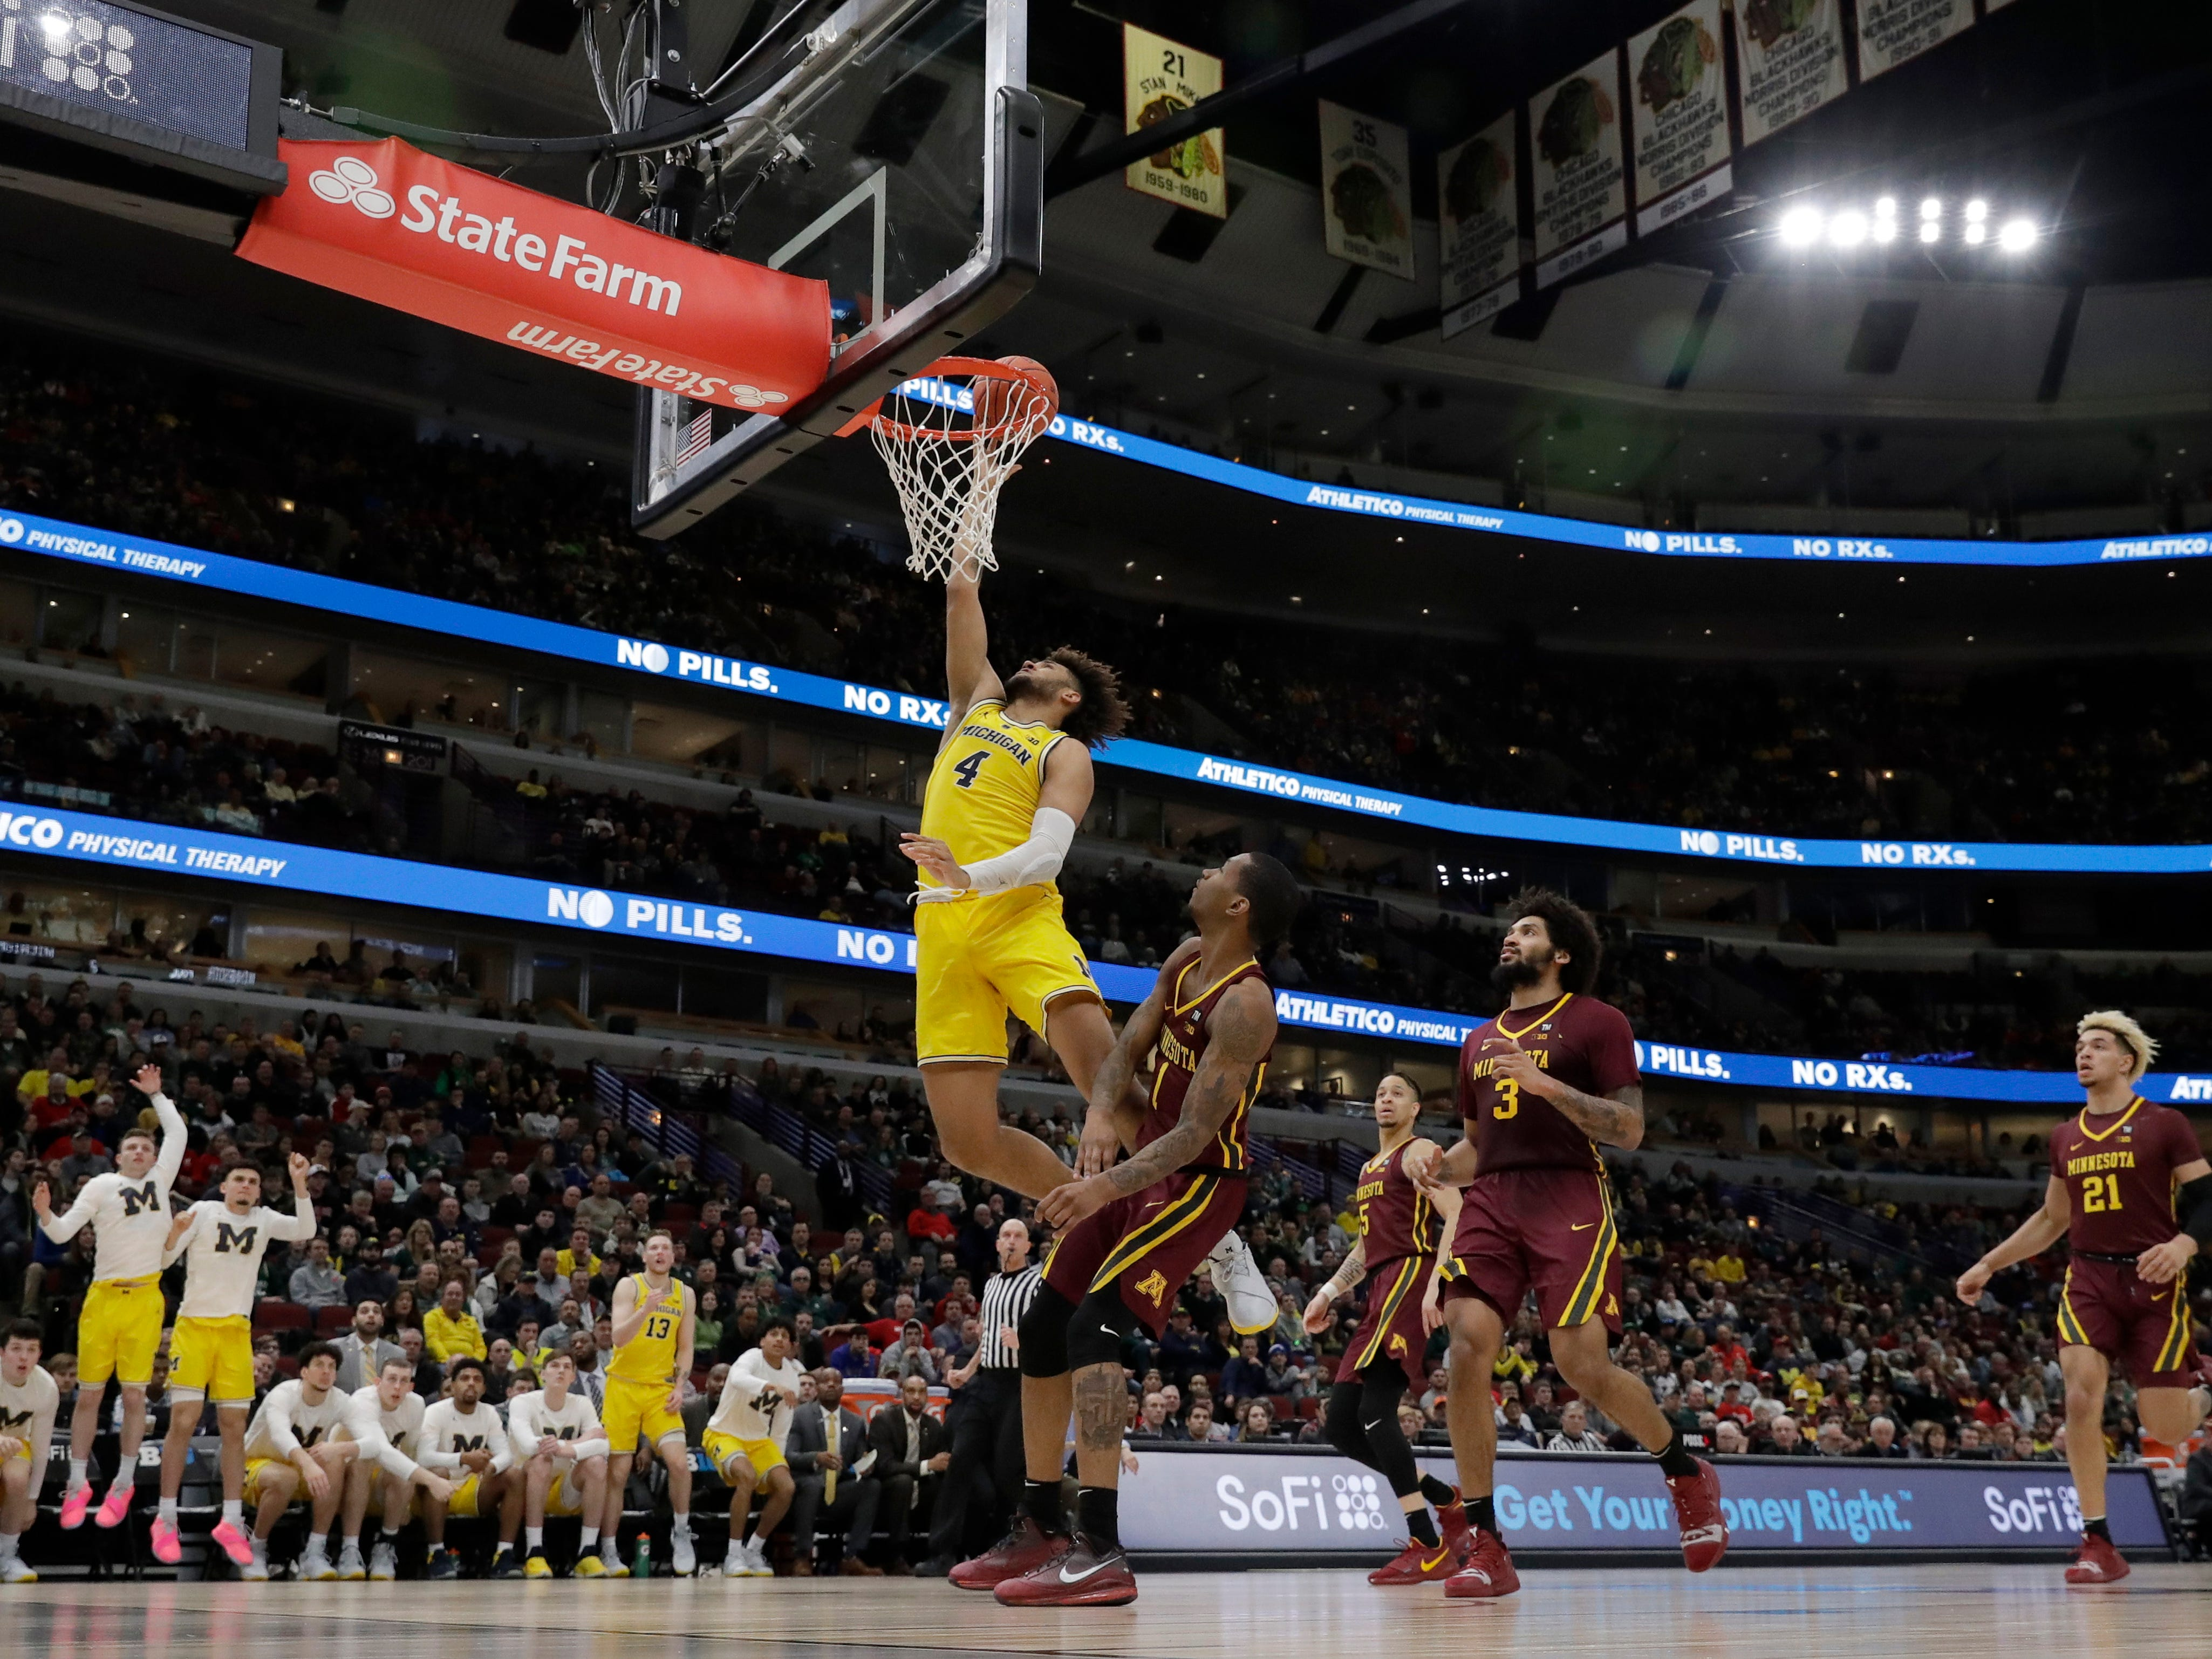 Michigan's Isaiah Livers goes up for a layup against Minnesota's Dupree McBrayer during the second half.